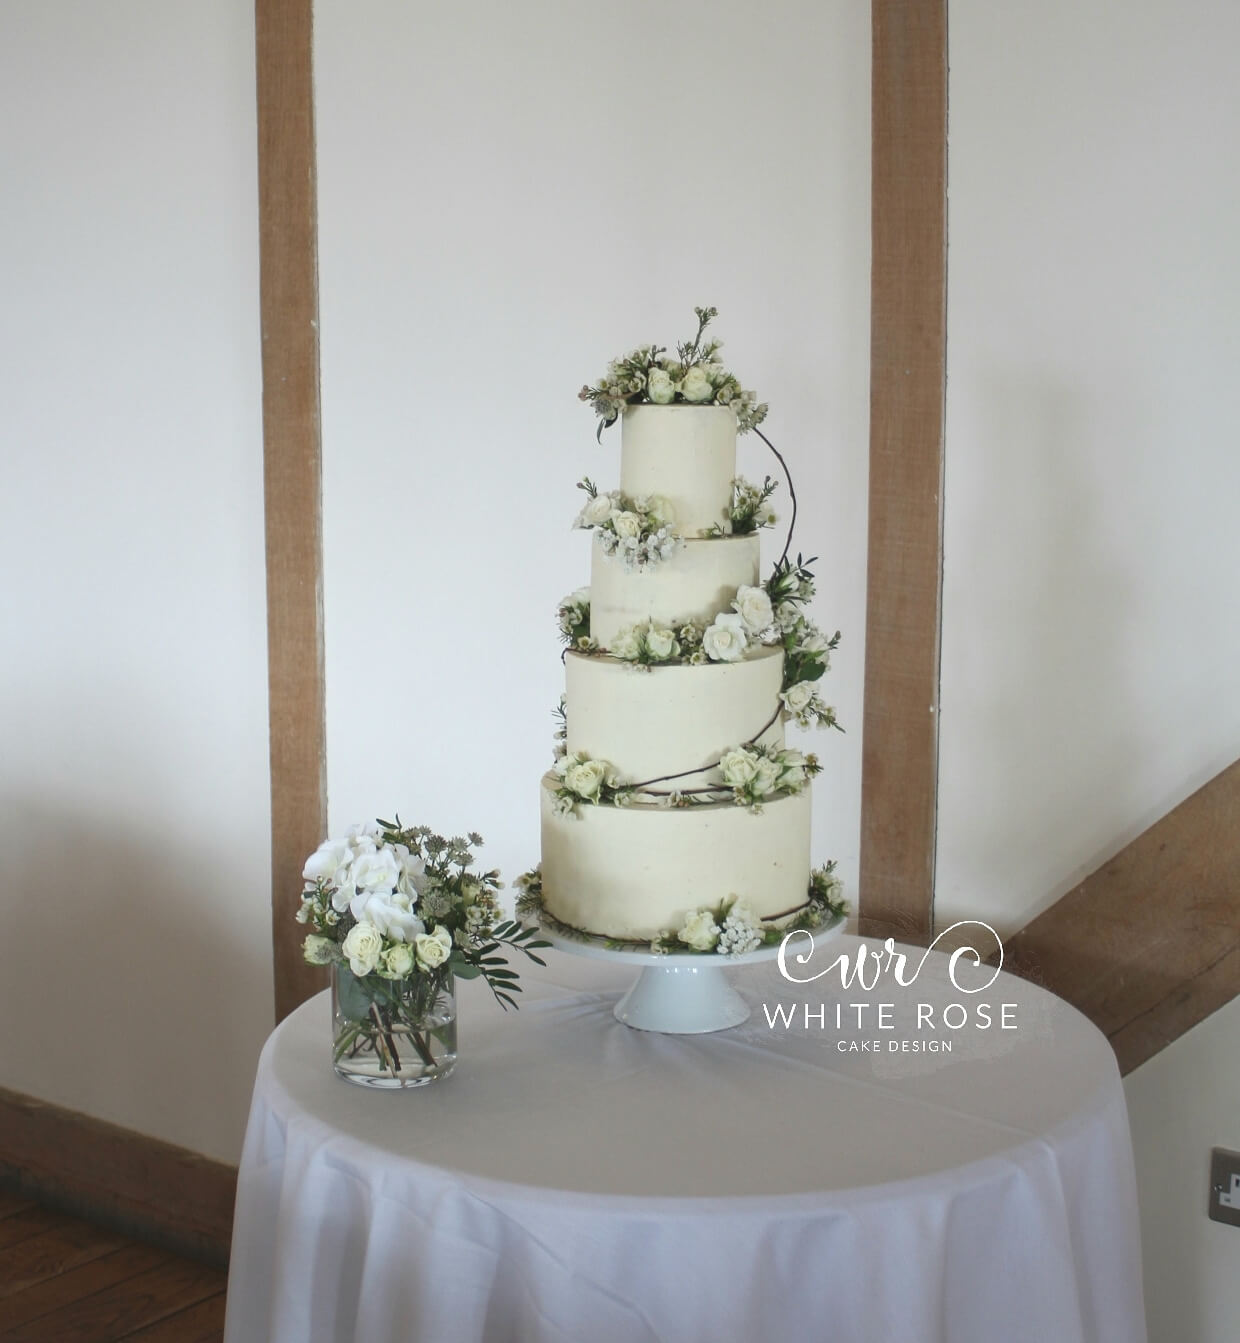 White Rose Cake Design - Naked and Semi-Naked Wedding Cakes West ...